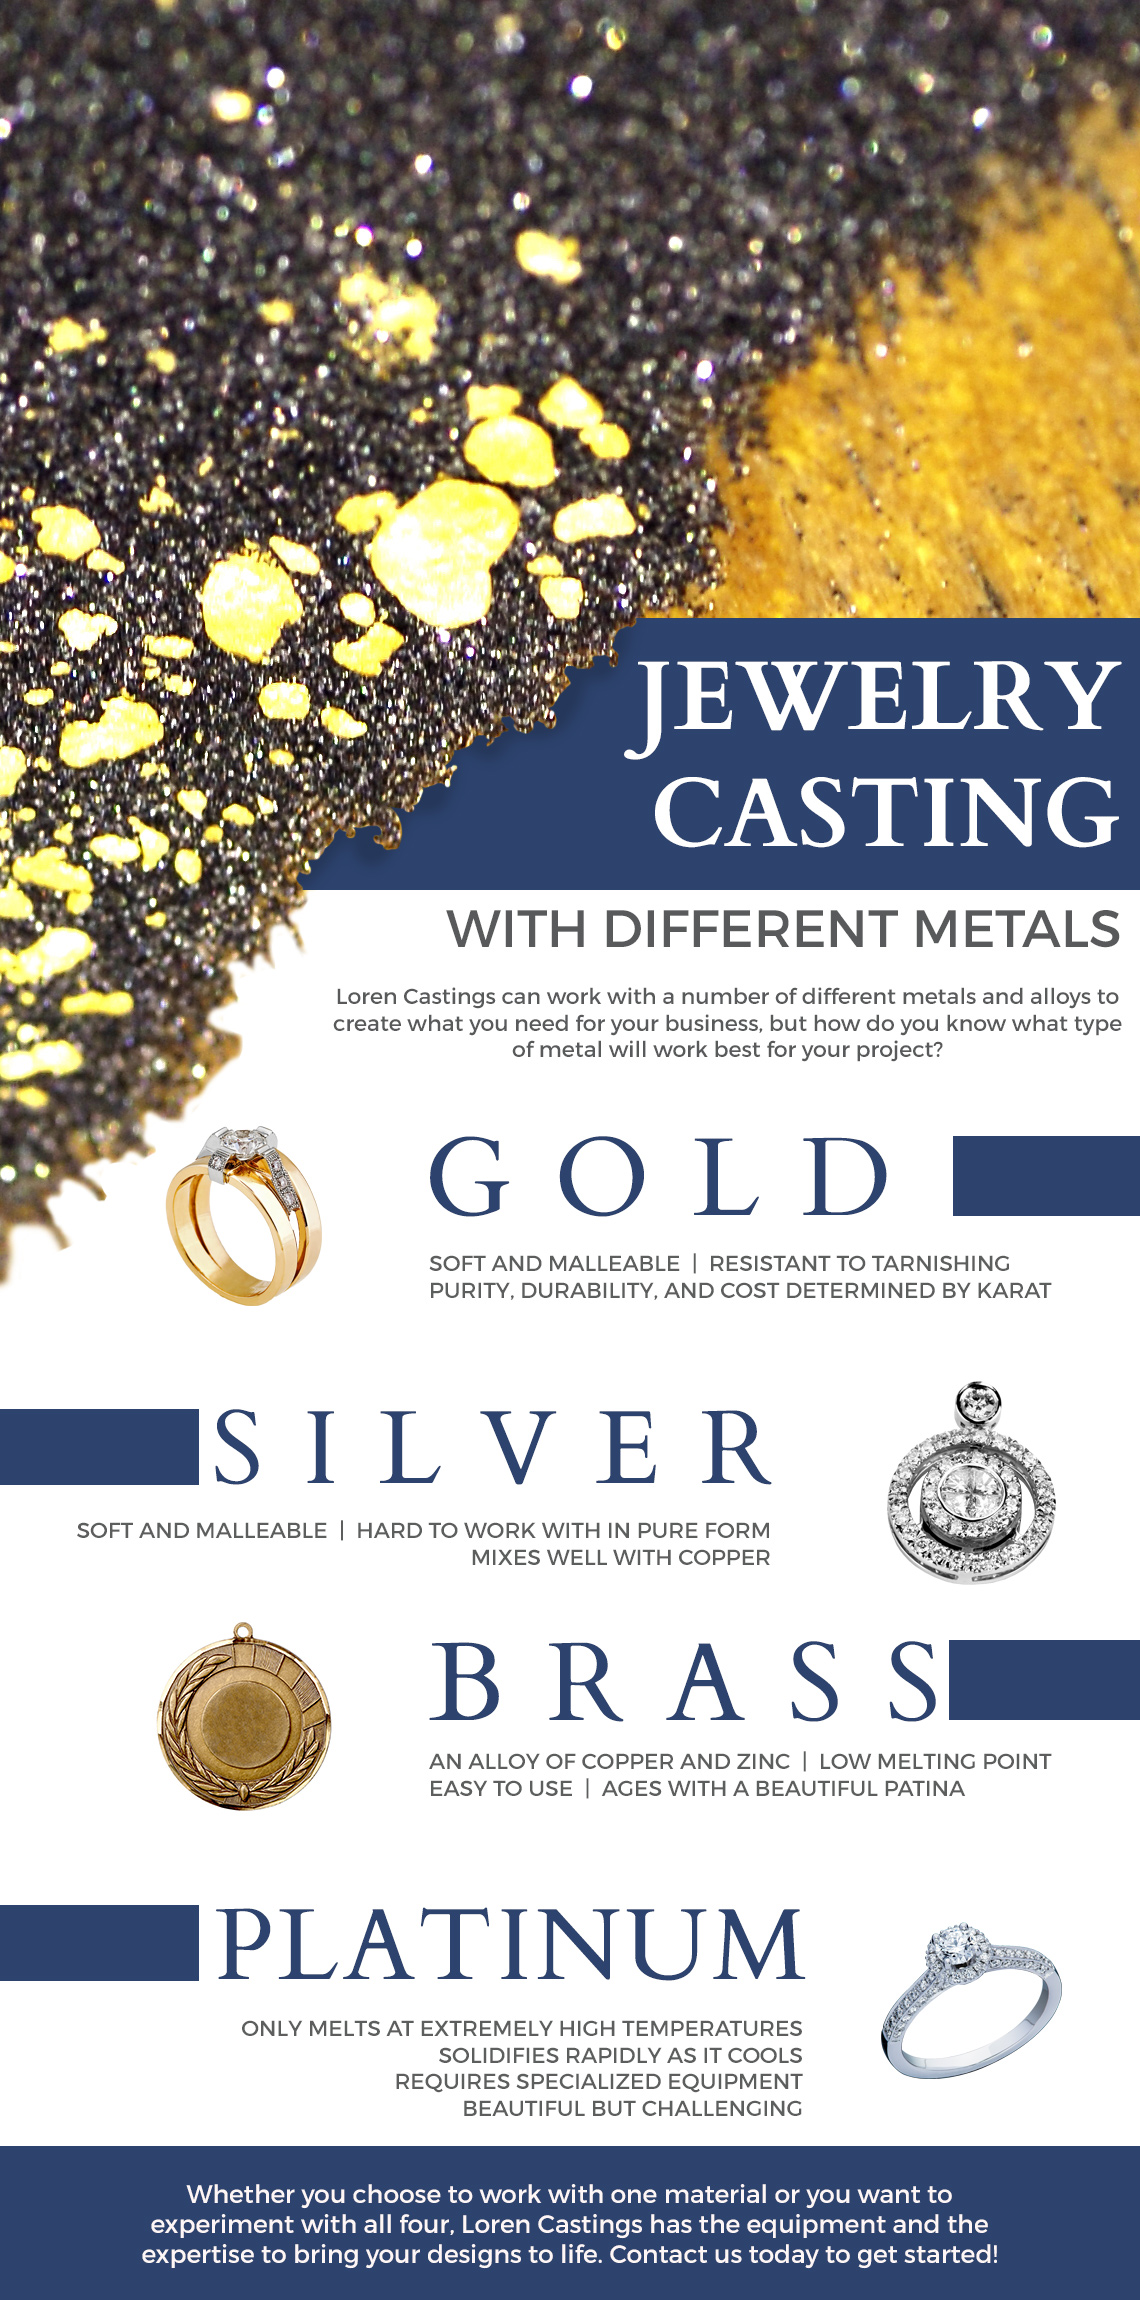 Your Guide To Jewelry Casting - Learn More About Our